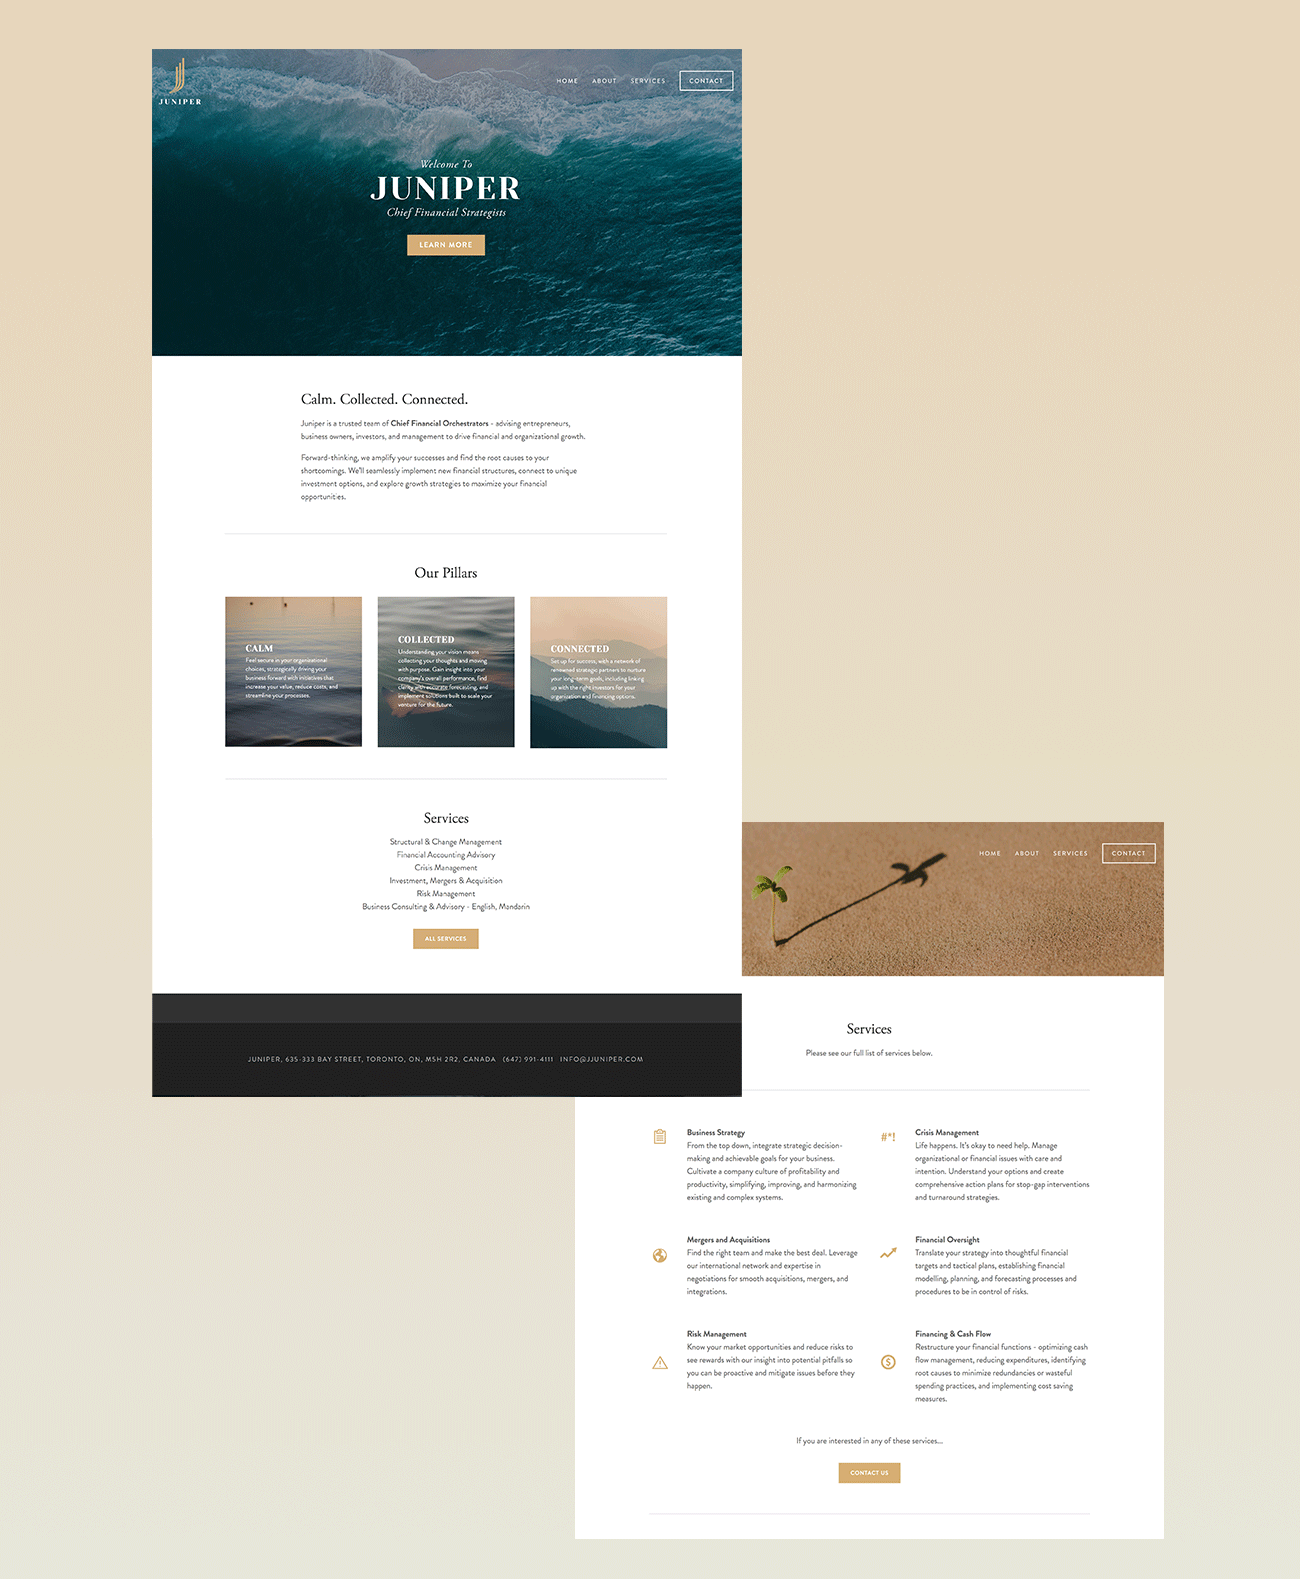 juniper-website-mockup-2.png